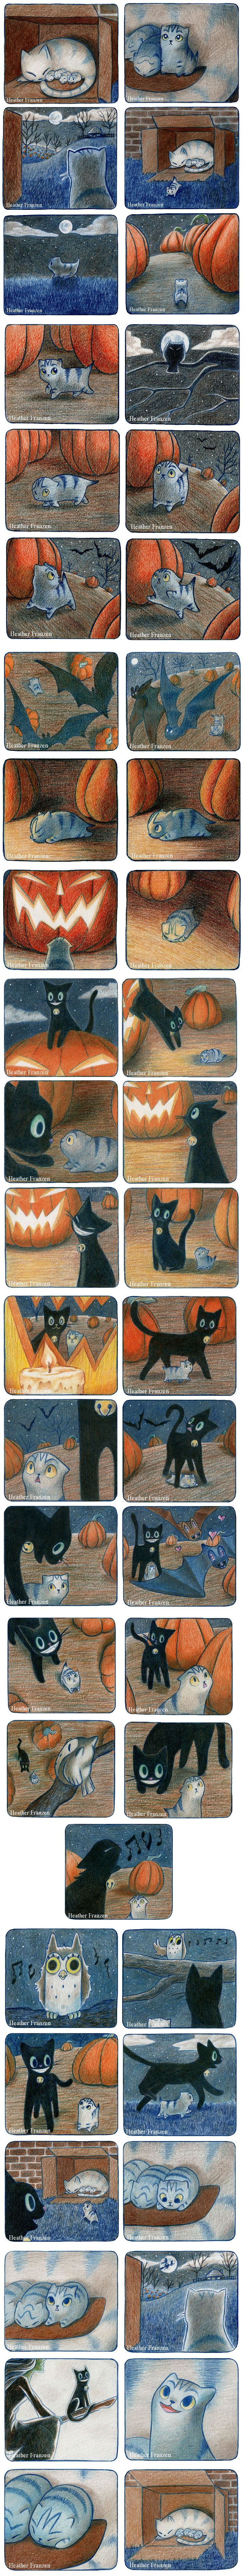 A Cat Story, thing are not always as scary as they seem and sometimes it takes a friend to realize that.